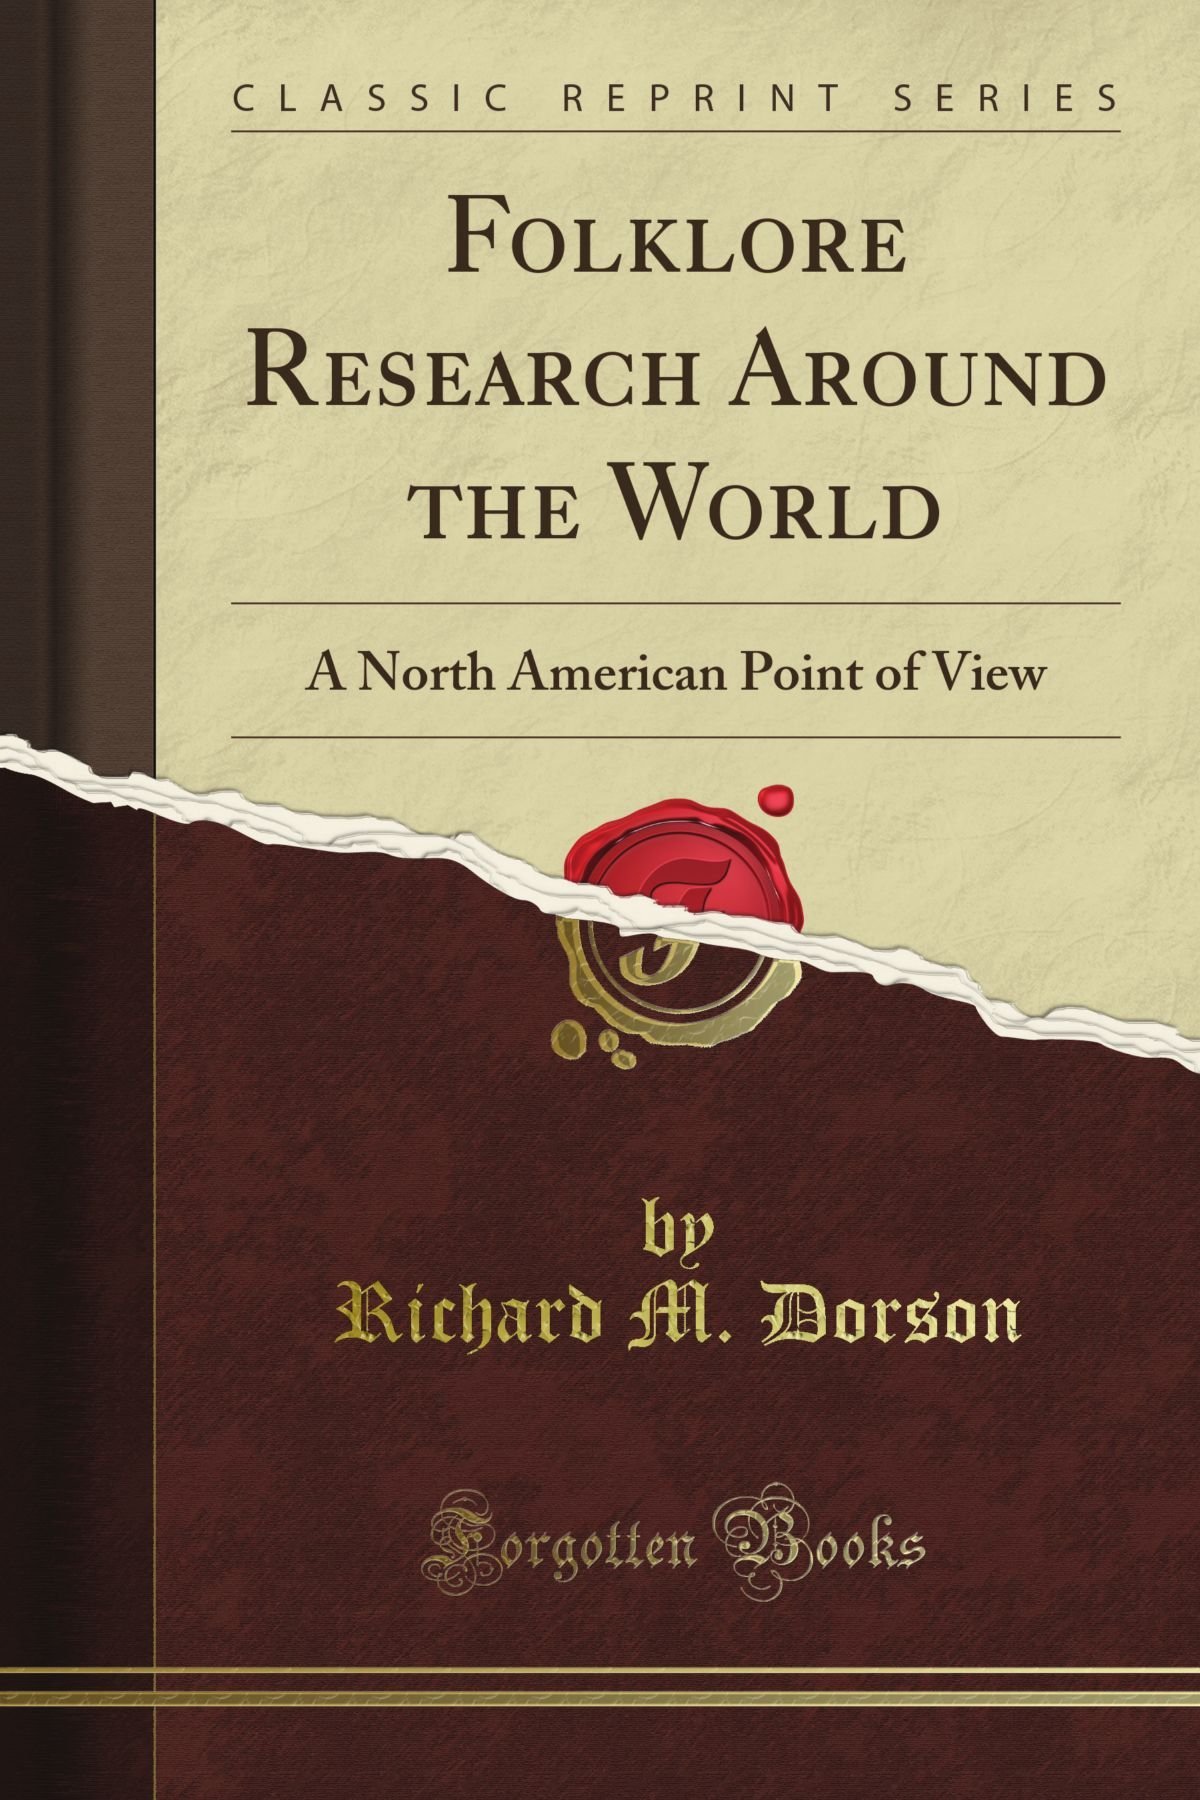 Folklore Research Around the World: A North American Point of View (Classic Reprint) PDF